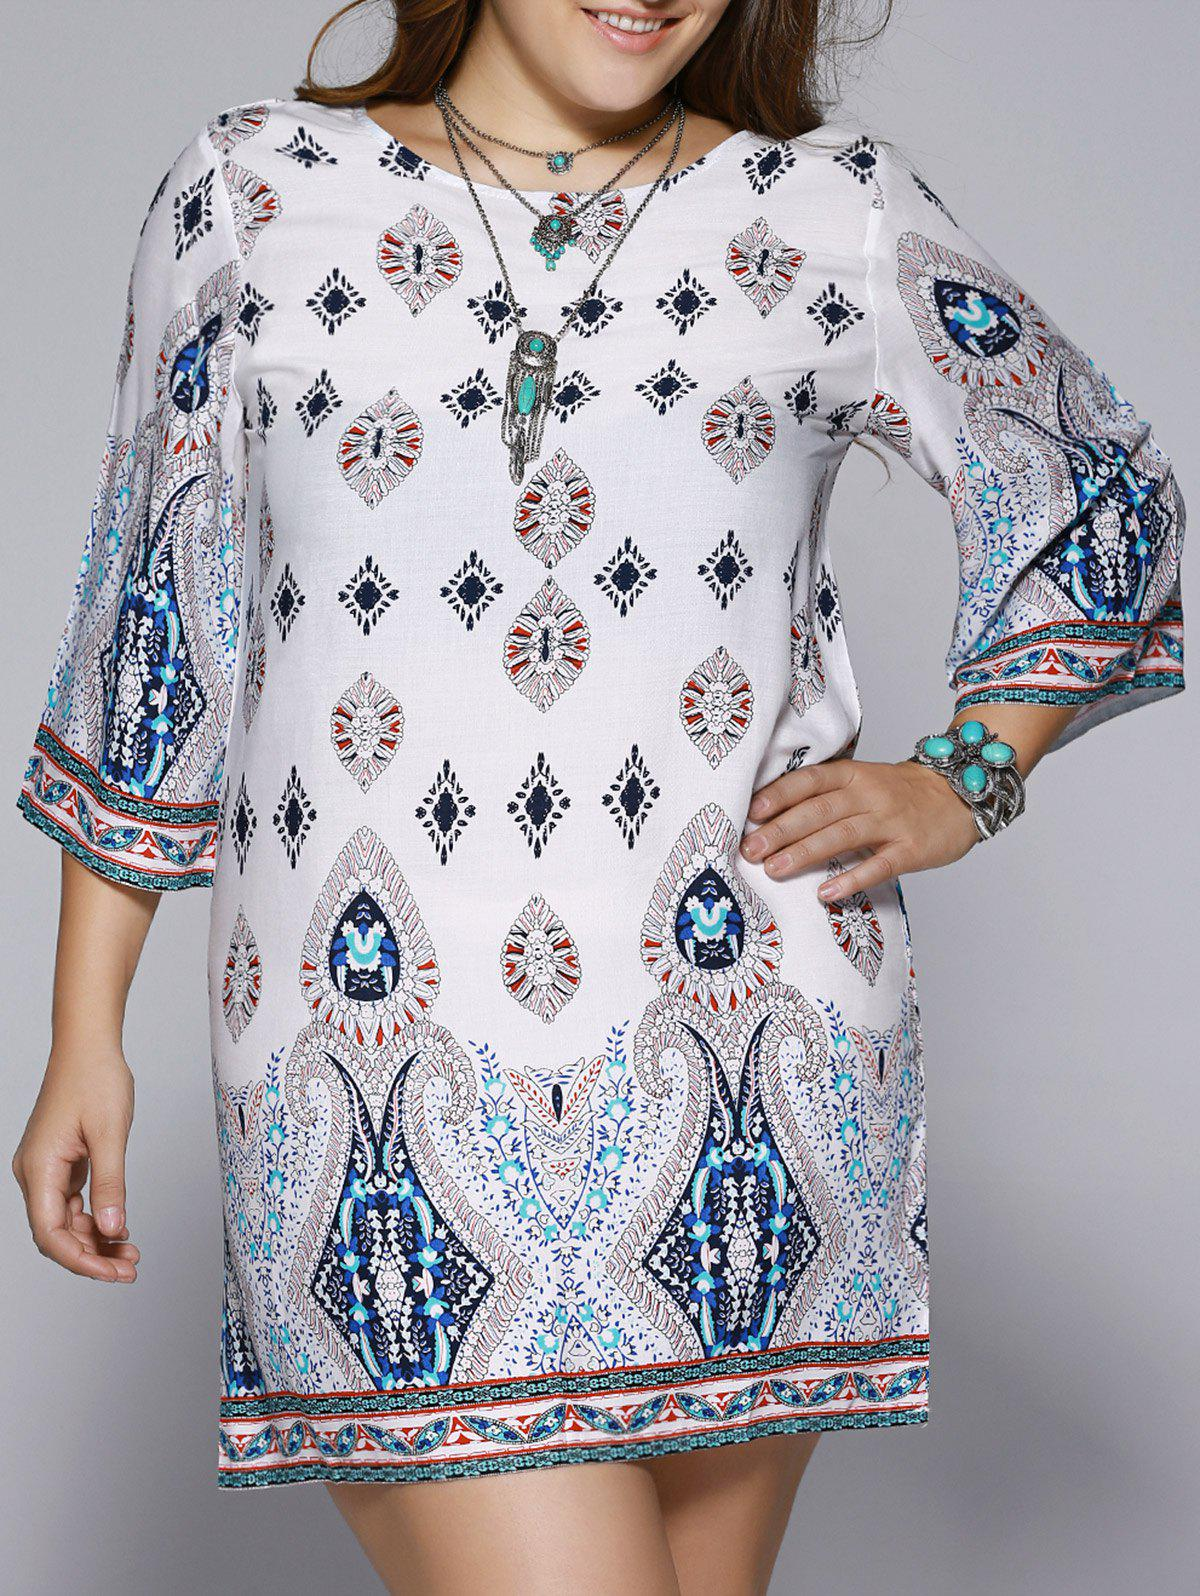 Plus Size Ethnic Print Open Back Shift DressWOMEN<br><br>Size: 5XL; Color: COLORMIX; Style: Brief; Material: Polyester; Silhouette: Straight; Dresses Length: Mid-Calf; Neckline: Jewel Neck; Sleeve Length: 3/4 Length Sleeves; Pattern Type: Print; With Belt: No; Season: Spring,Summer; Weight: 0.180kg; Package Contents: 1 x Dress;